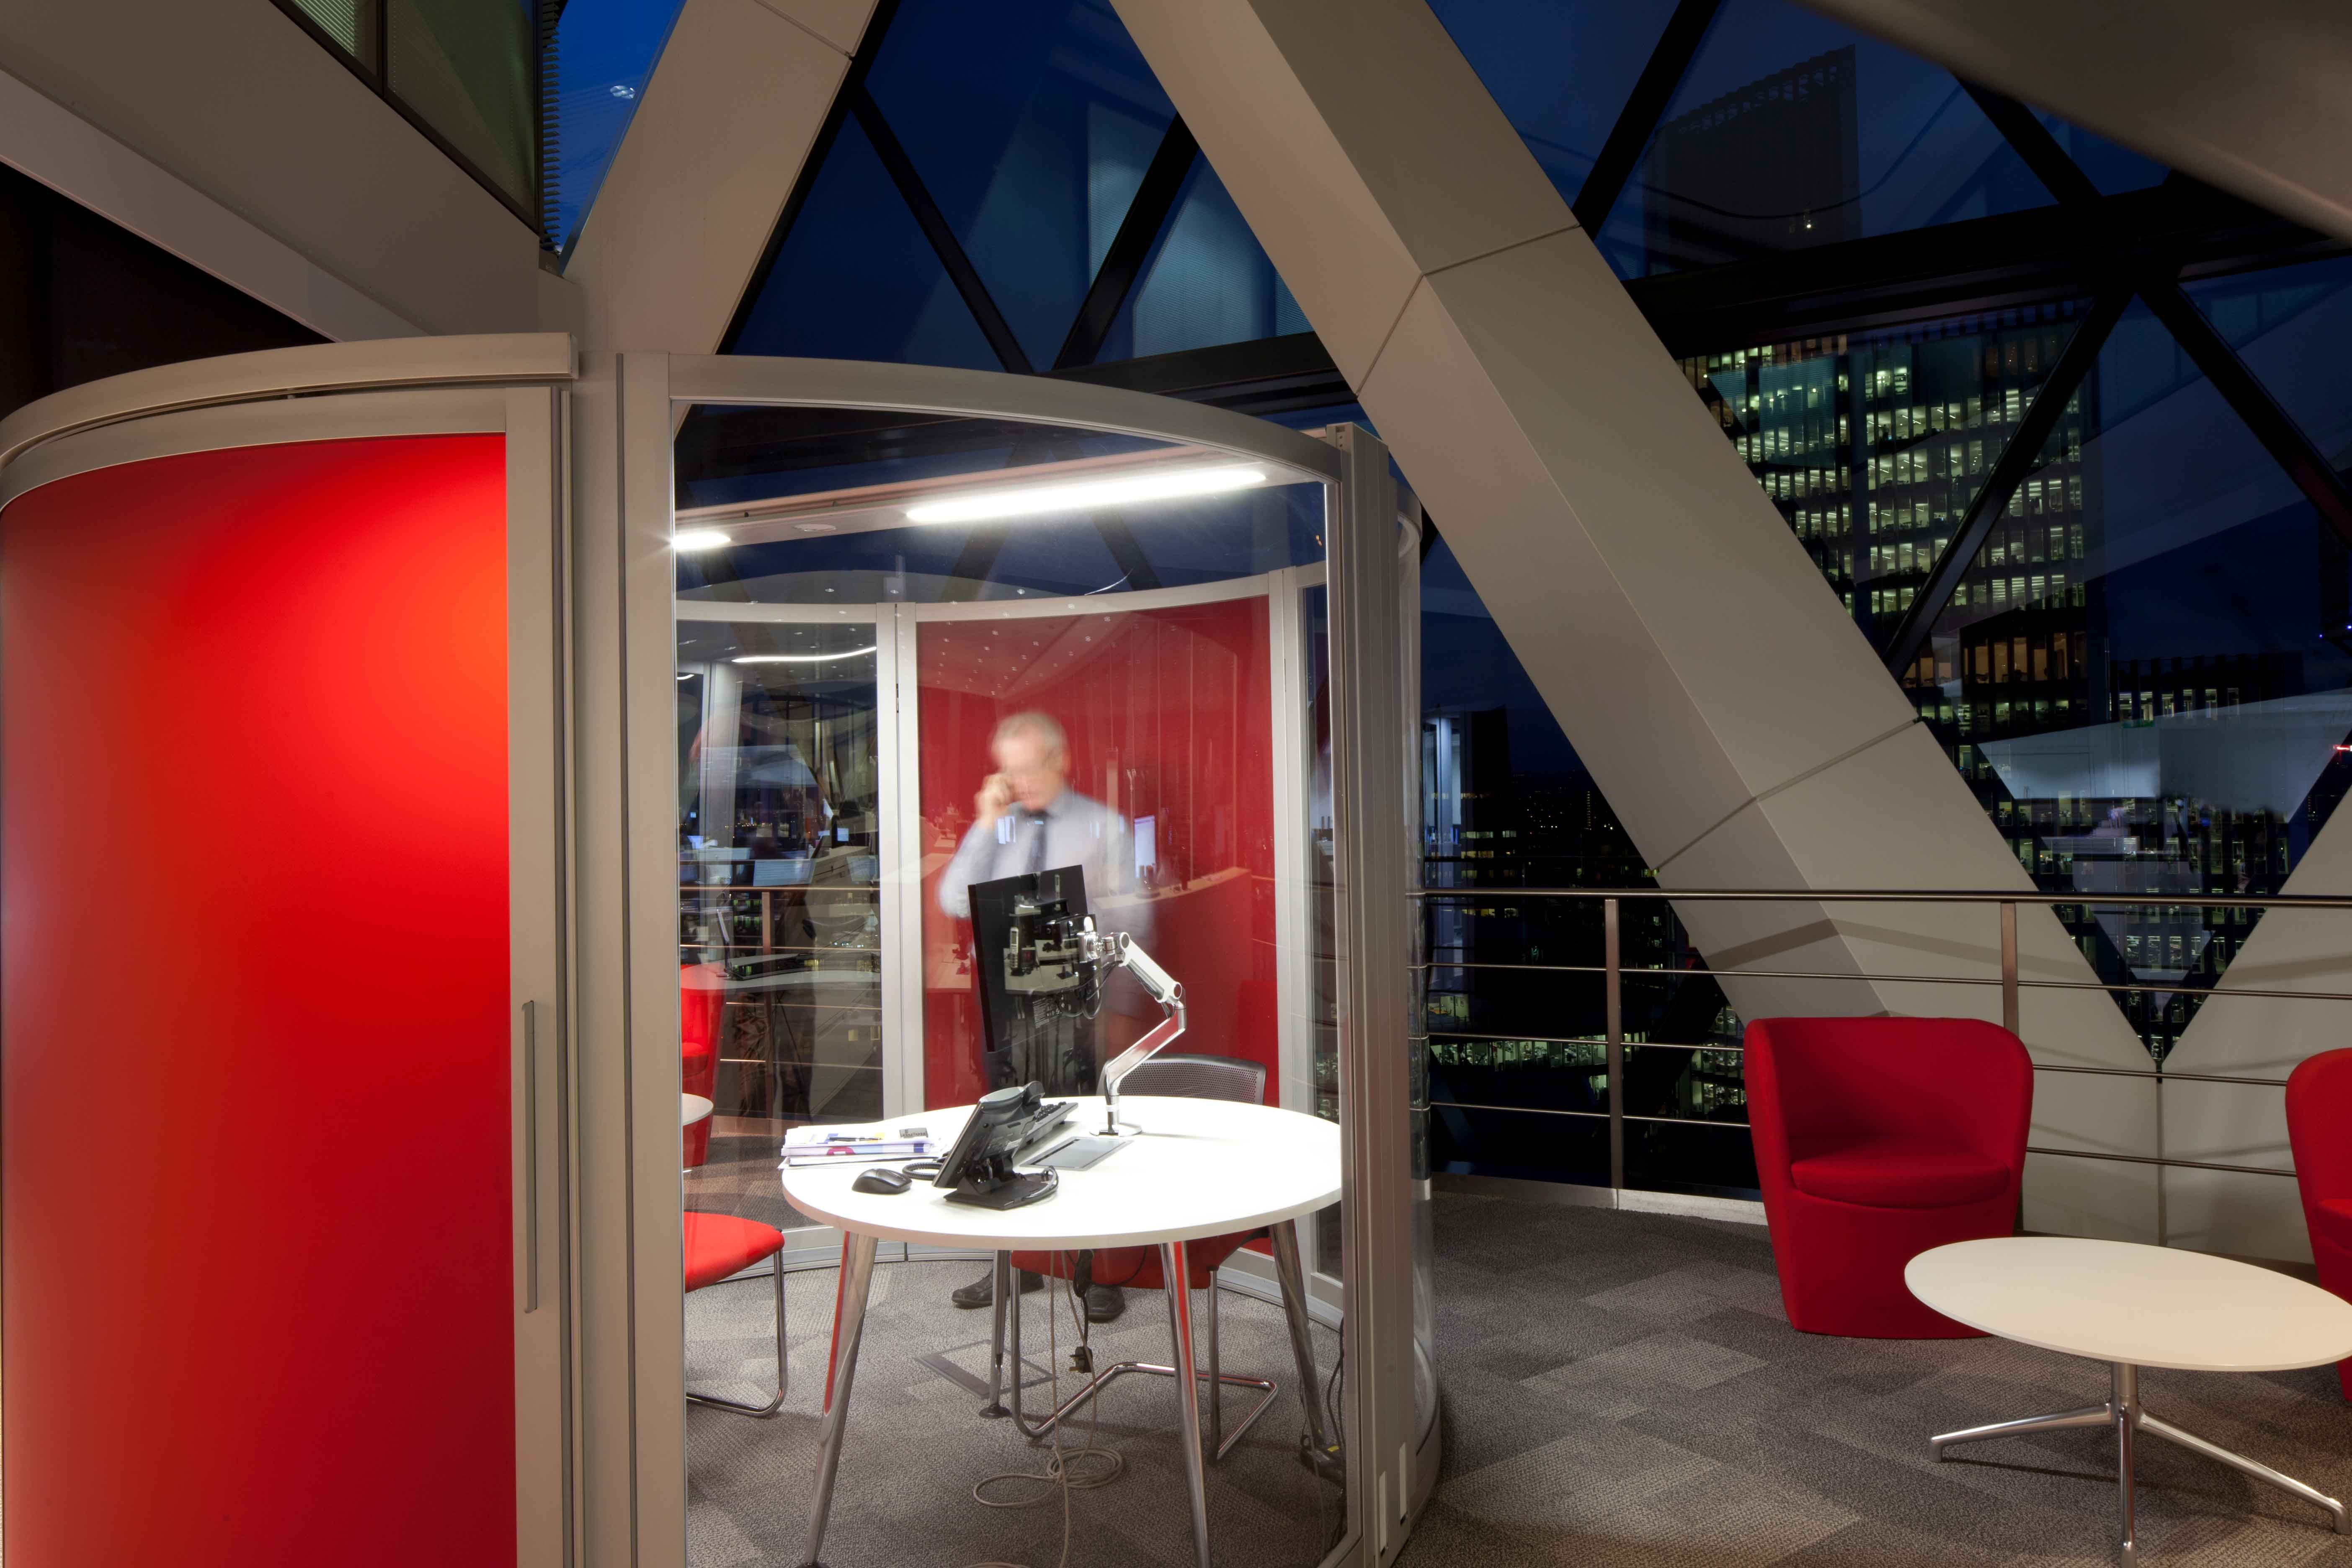 Semi-Private Meeting Booth | In more fit-out work at 'The Gherkin' for MLA, Level 14 was refurbished to accommodate approximately 180 staff in stunning open plan office accommodation retaining, but refurbishing, a majority of the existing cellular accommodation whilst Level 34 provides a high quality, multi functional meeting room and hospitality suite.